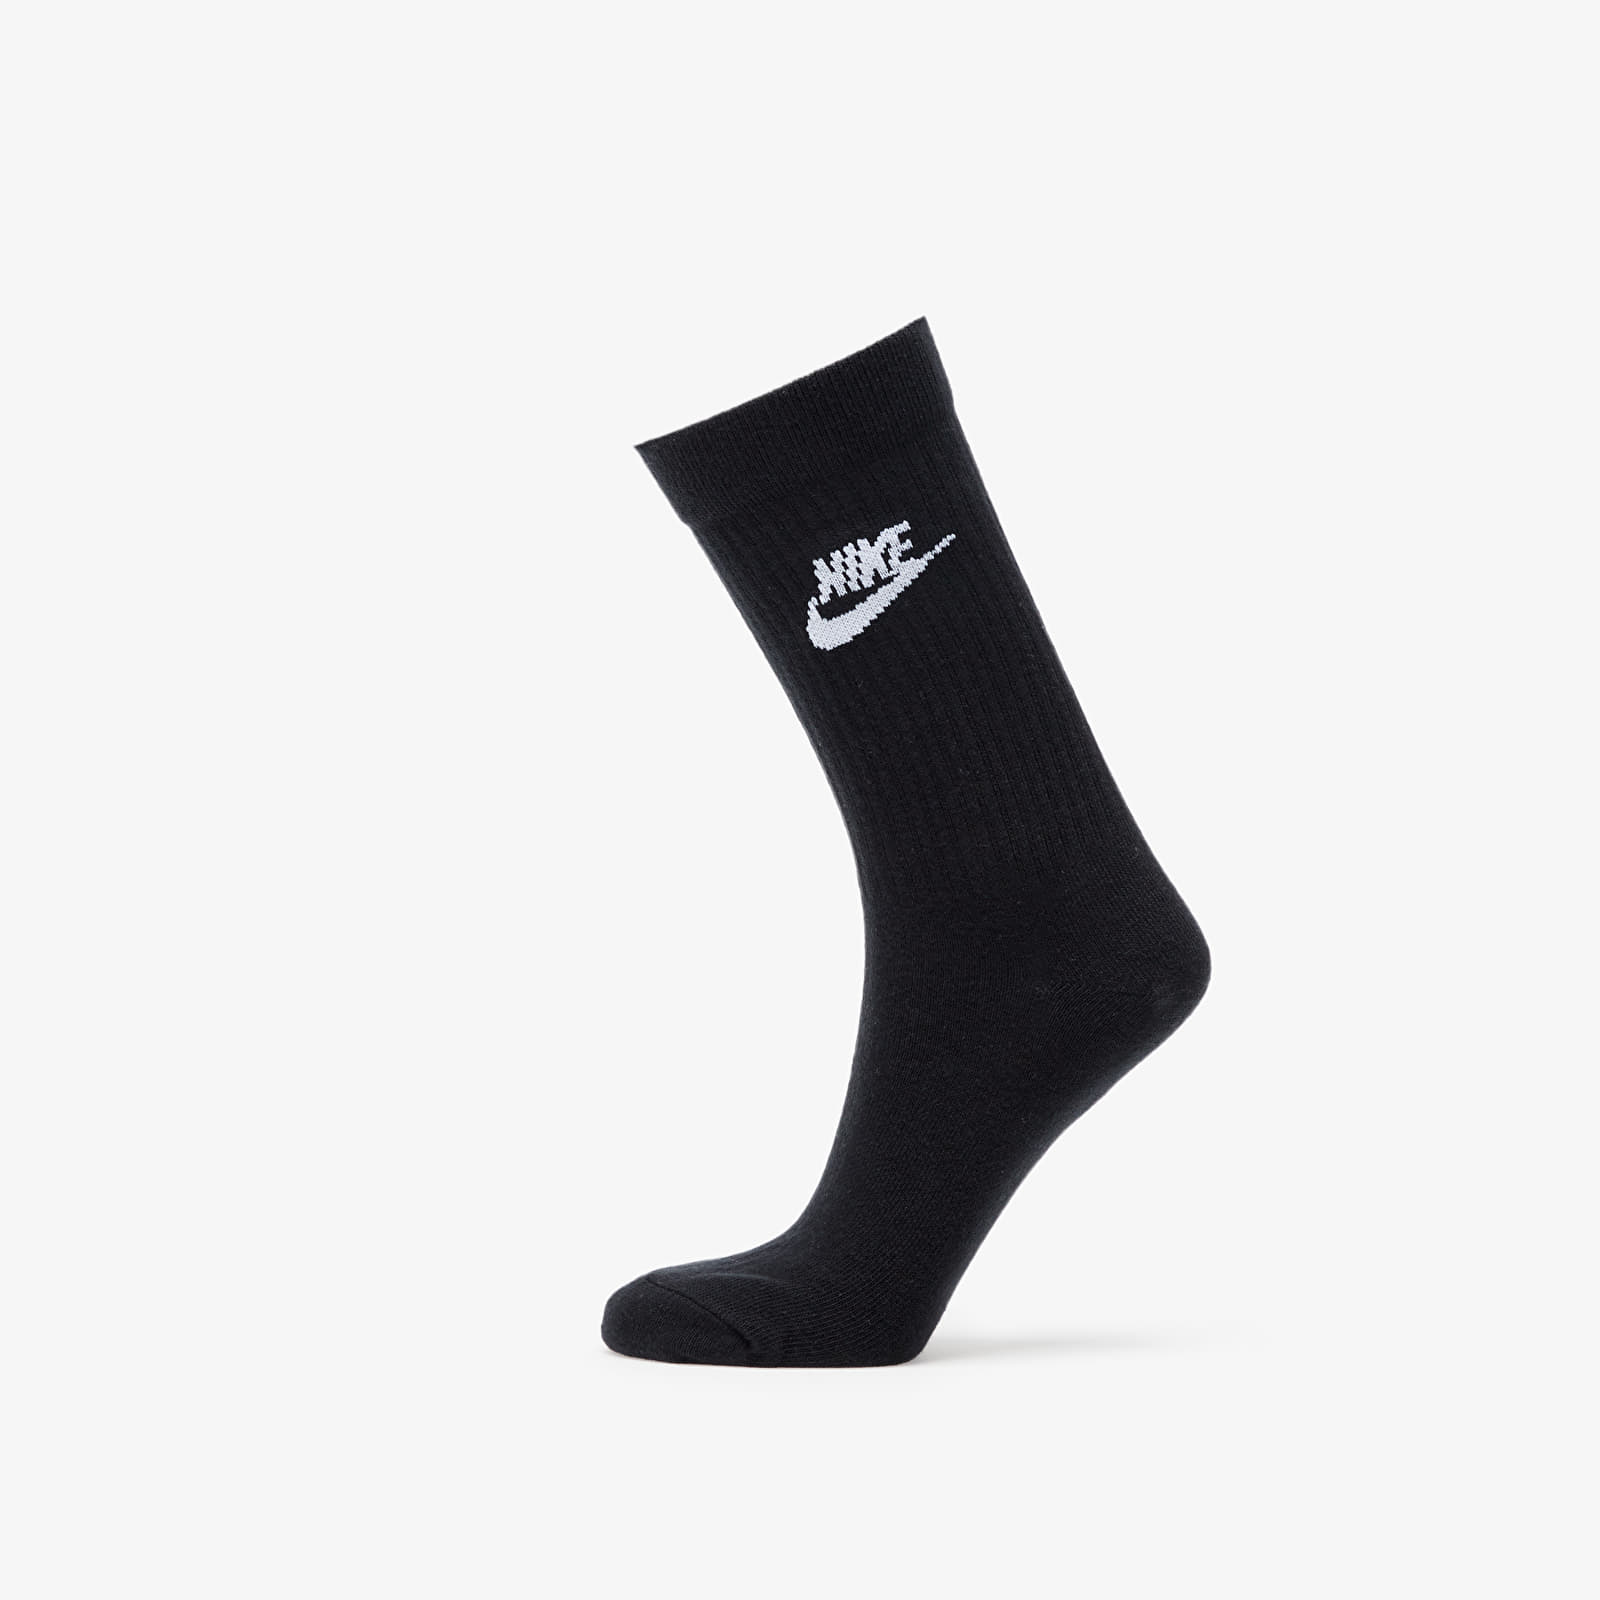 Socks Nike Sportswear Everyday Essential 3 Pack Crew Socks Black/ White